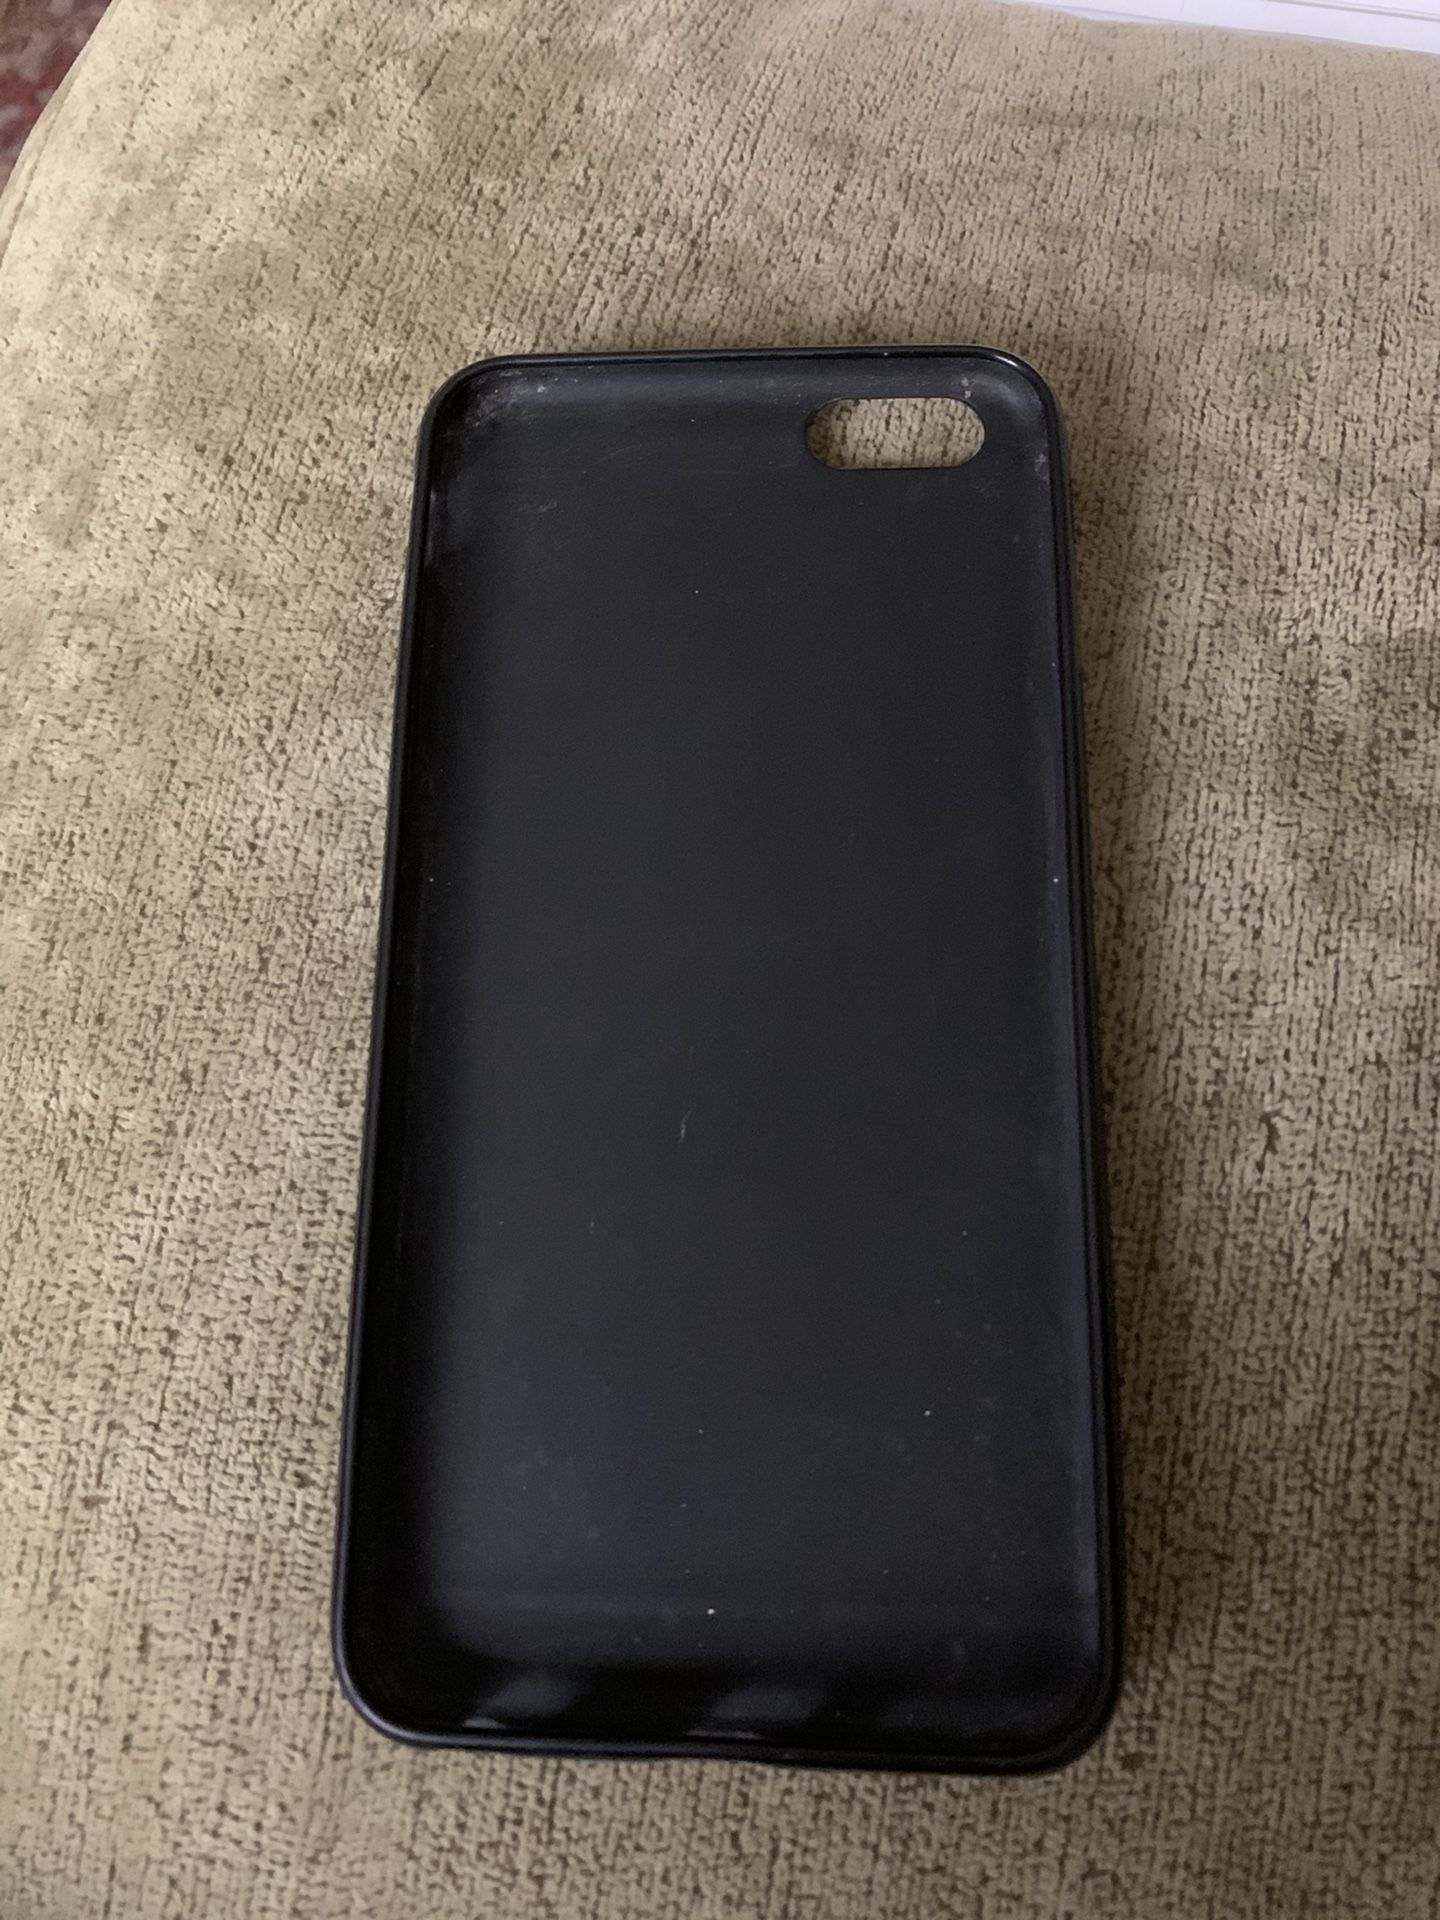 Case for iPhone 6s PLUS phone - black - perfect condition